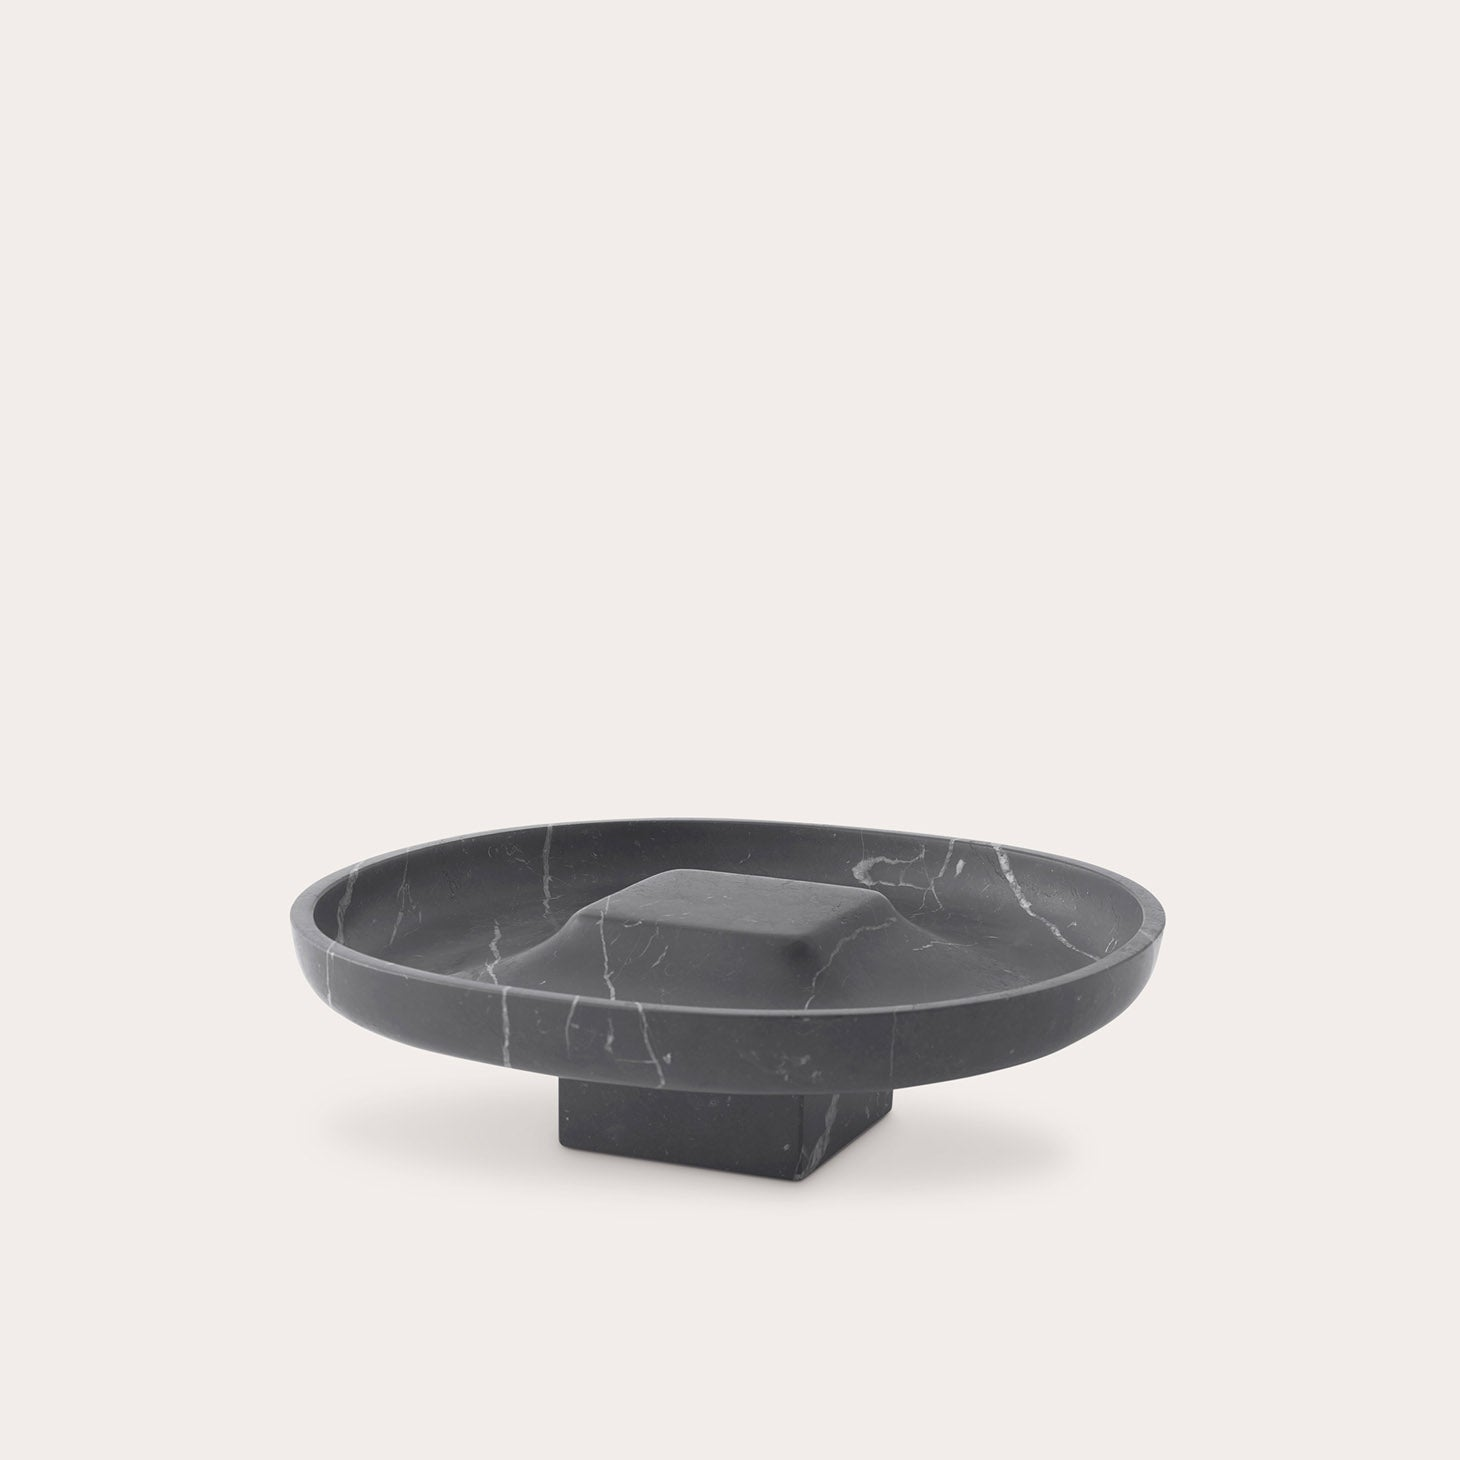 Under Bowl L Accessories Nendo Designer Furniture Sku: 625-100-10012